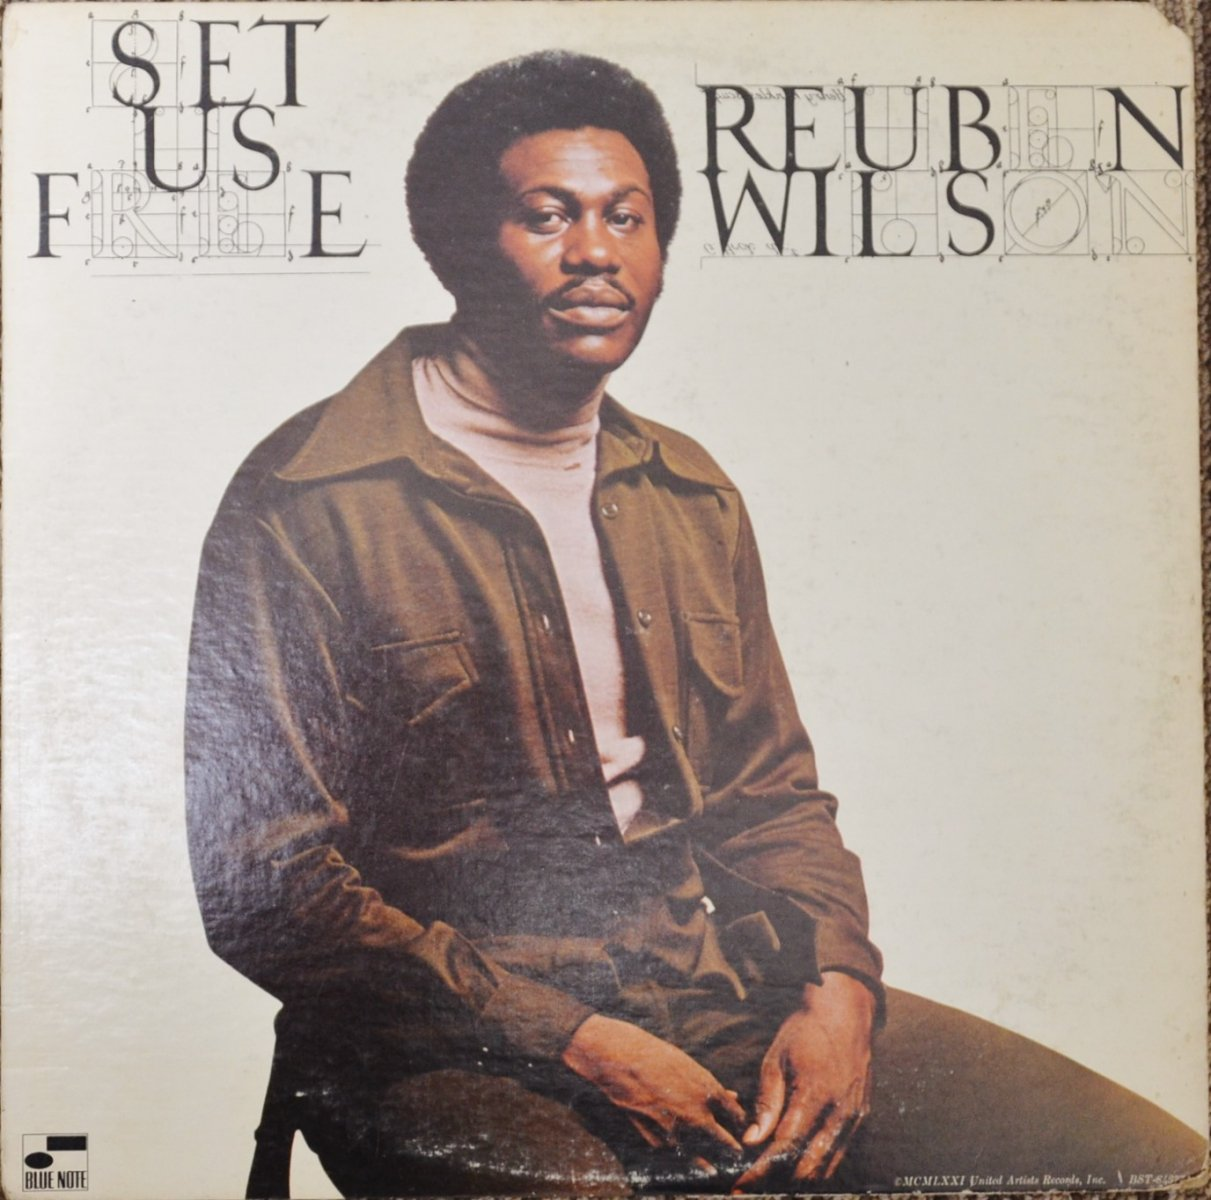 REUBEN WILSON ‎/ SET US FREE (LP)